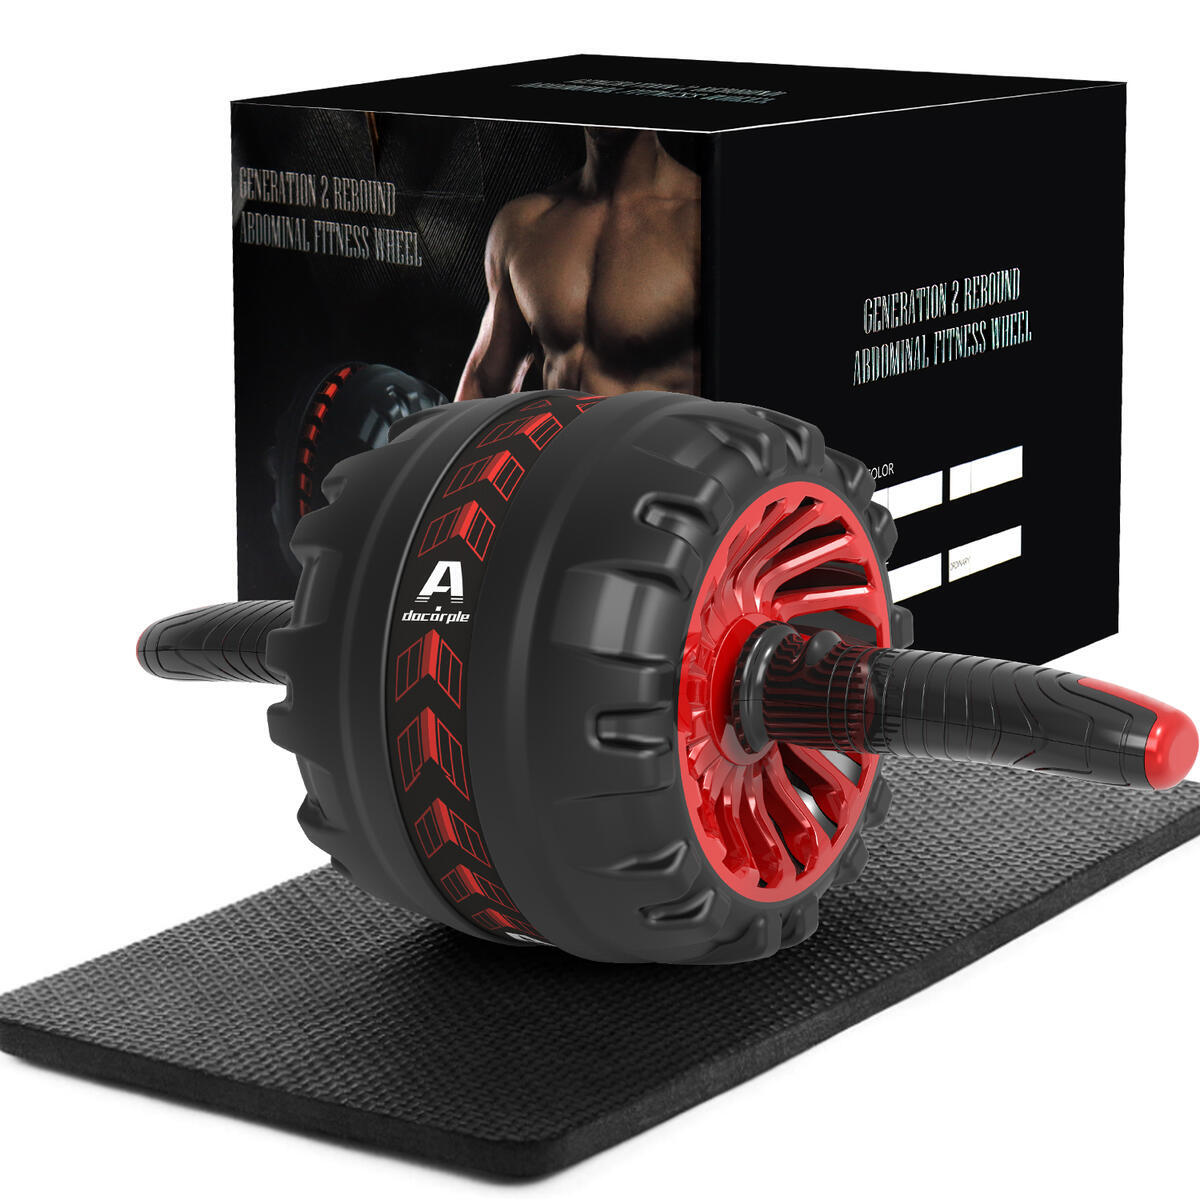 Ab Roller for Abs Workout, Ab Roller Wheel Exercise Equipment for Core Workout with Knee Mat, Perfect Home Gym Equipment for Men Women Abdominal Exercise